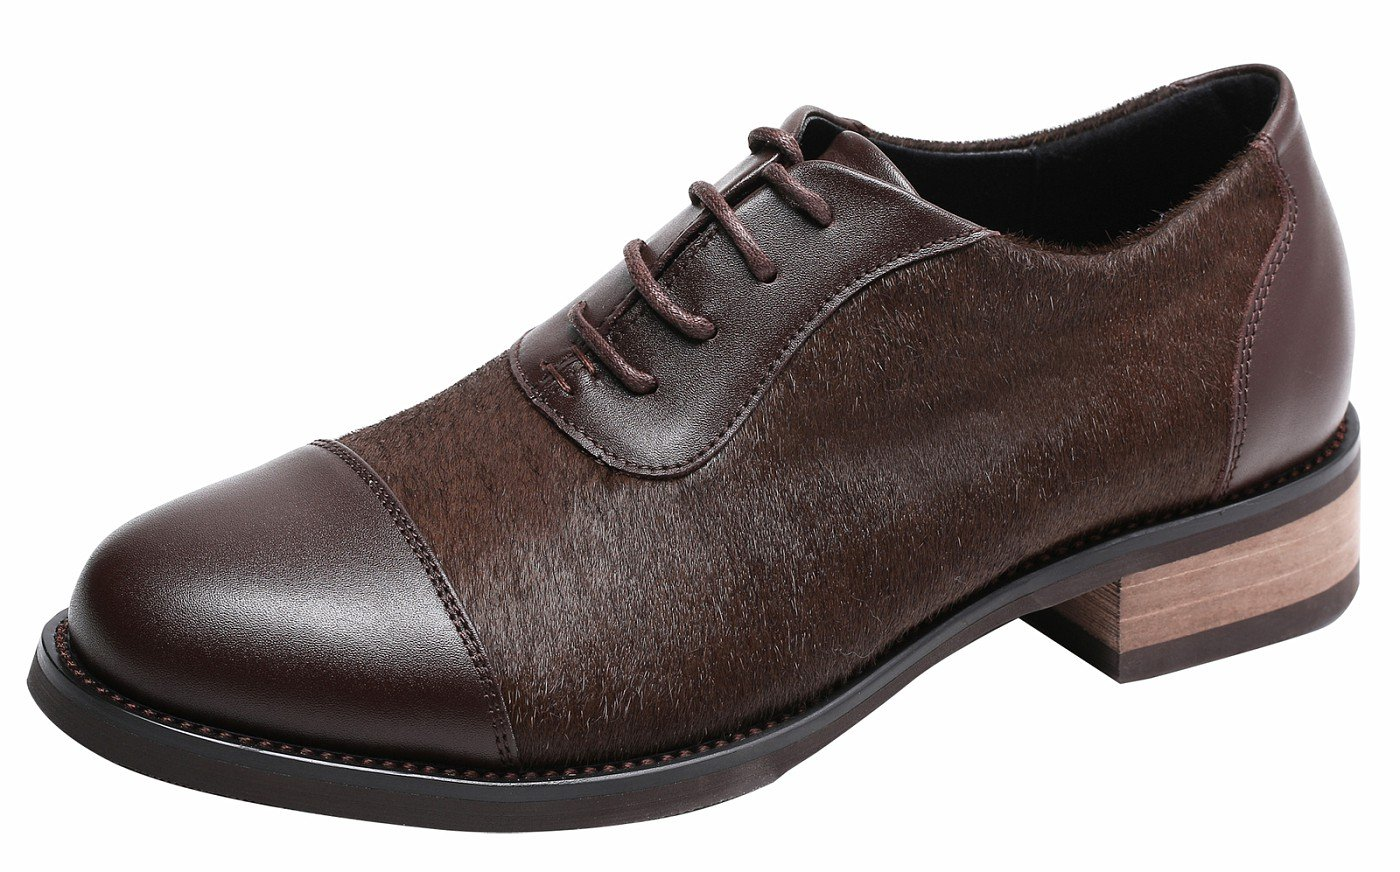 Womens Pieced Cowhide Leather Upper, Lace Up Comfort Oxford Shoes, Dyed Hony Hair Fasion Chocolate6.5